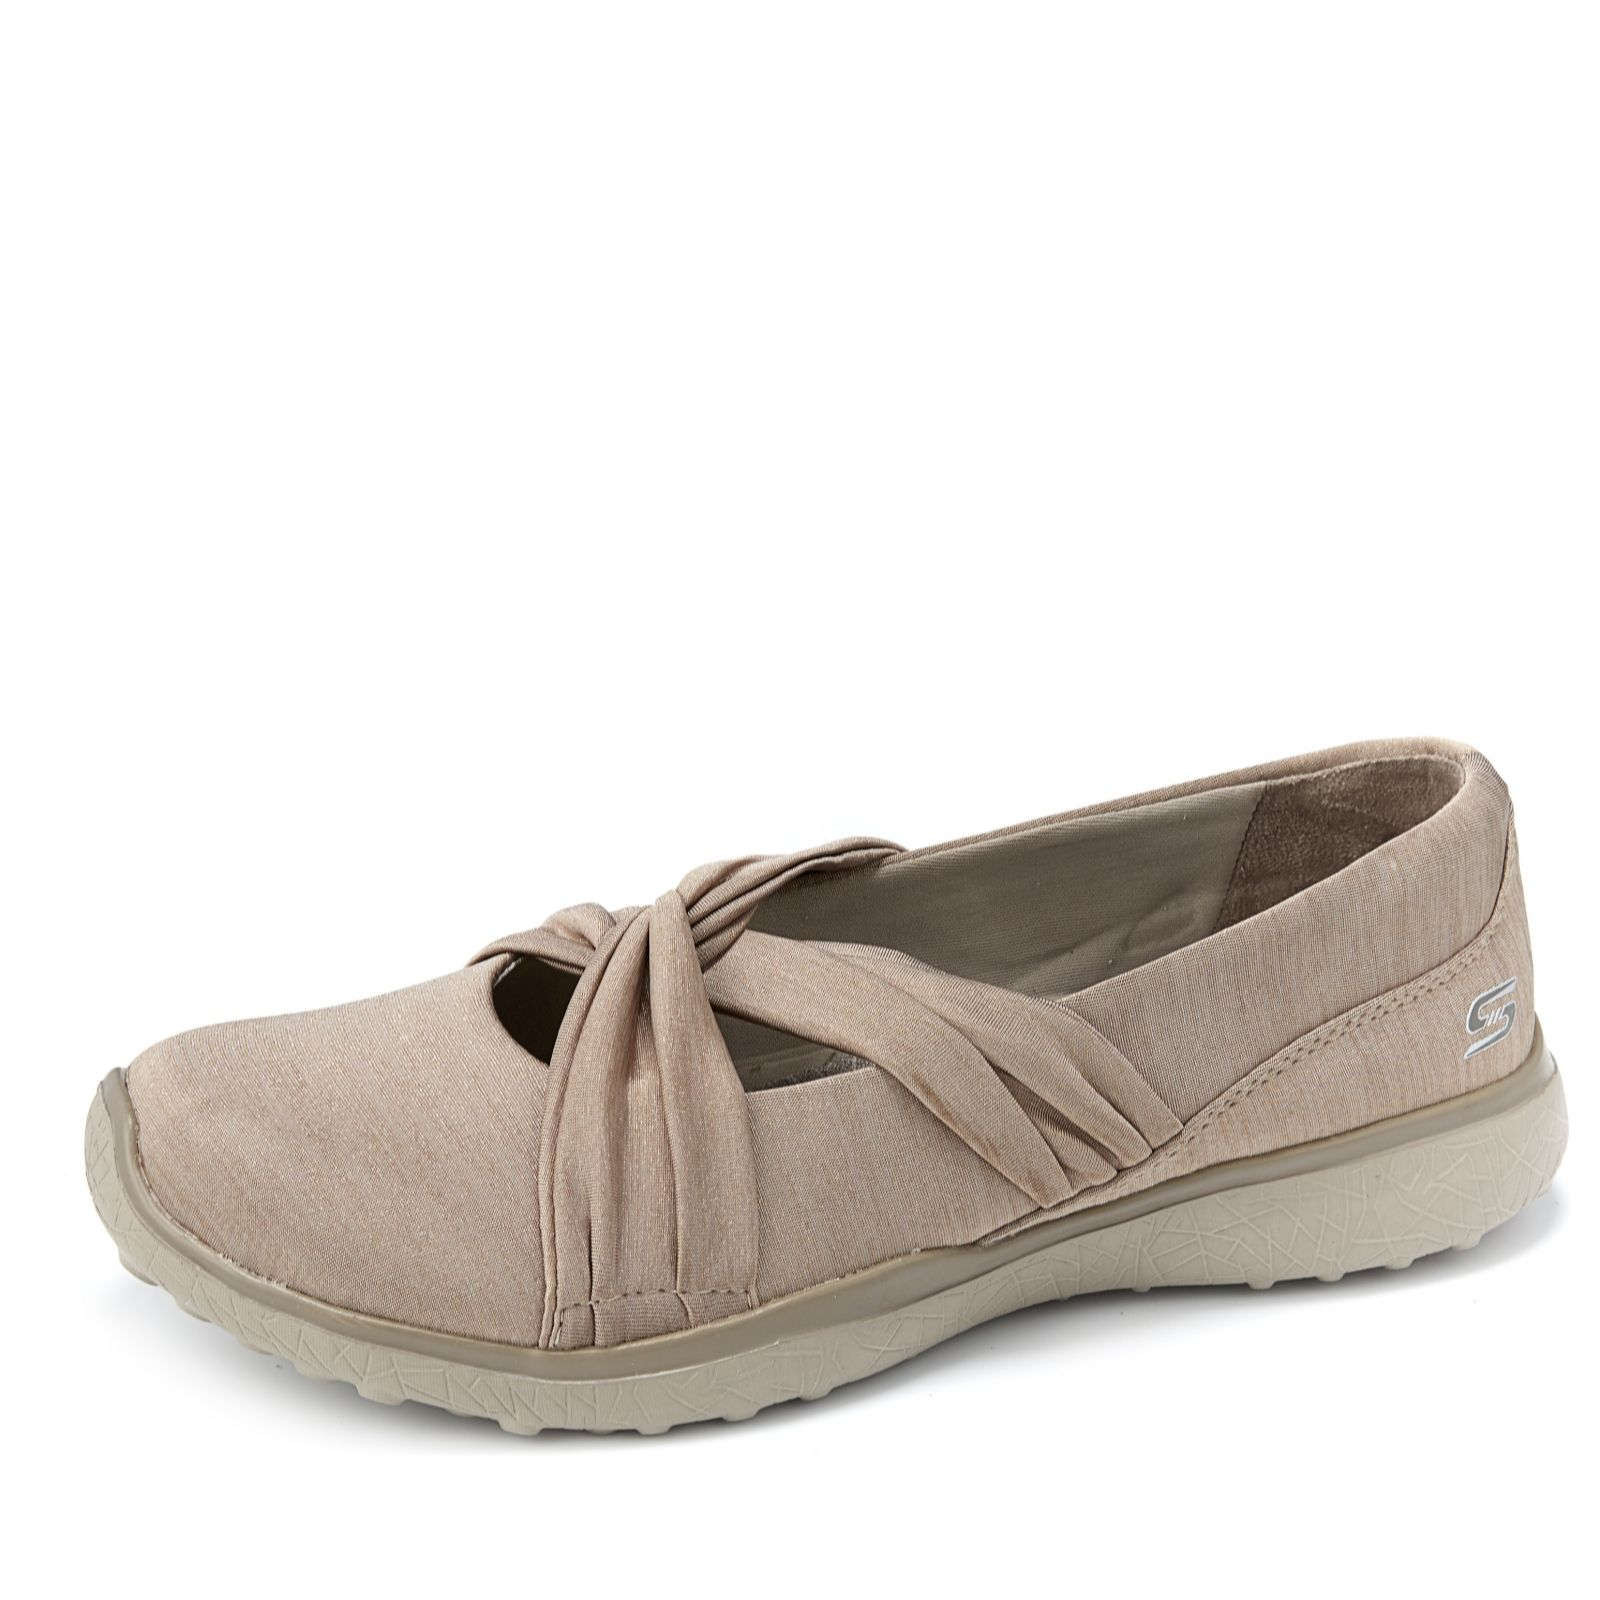 footwear special section how to buy Skechers Jersey Knot Mary Jane - QVC UK